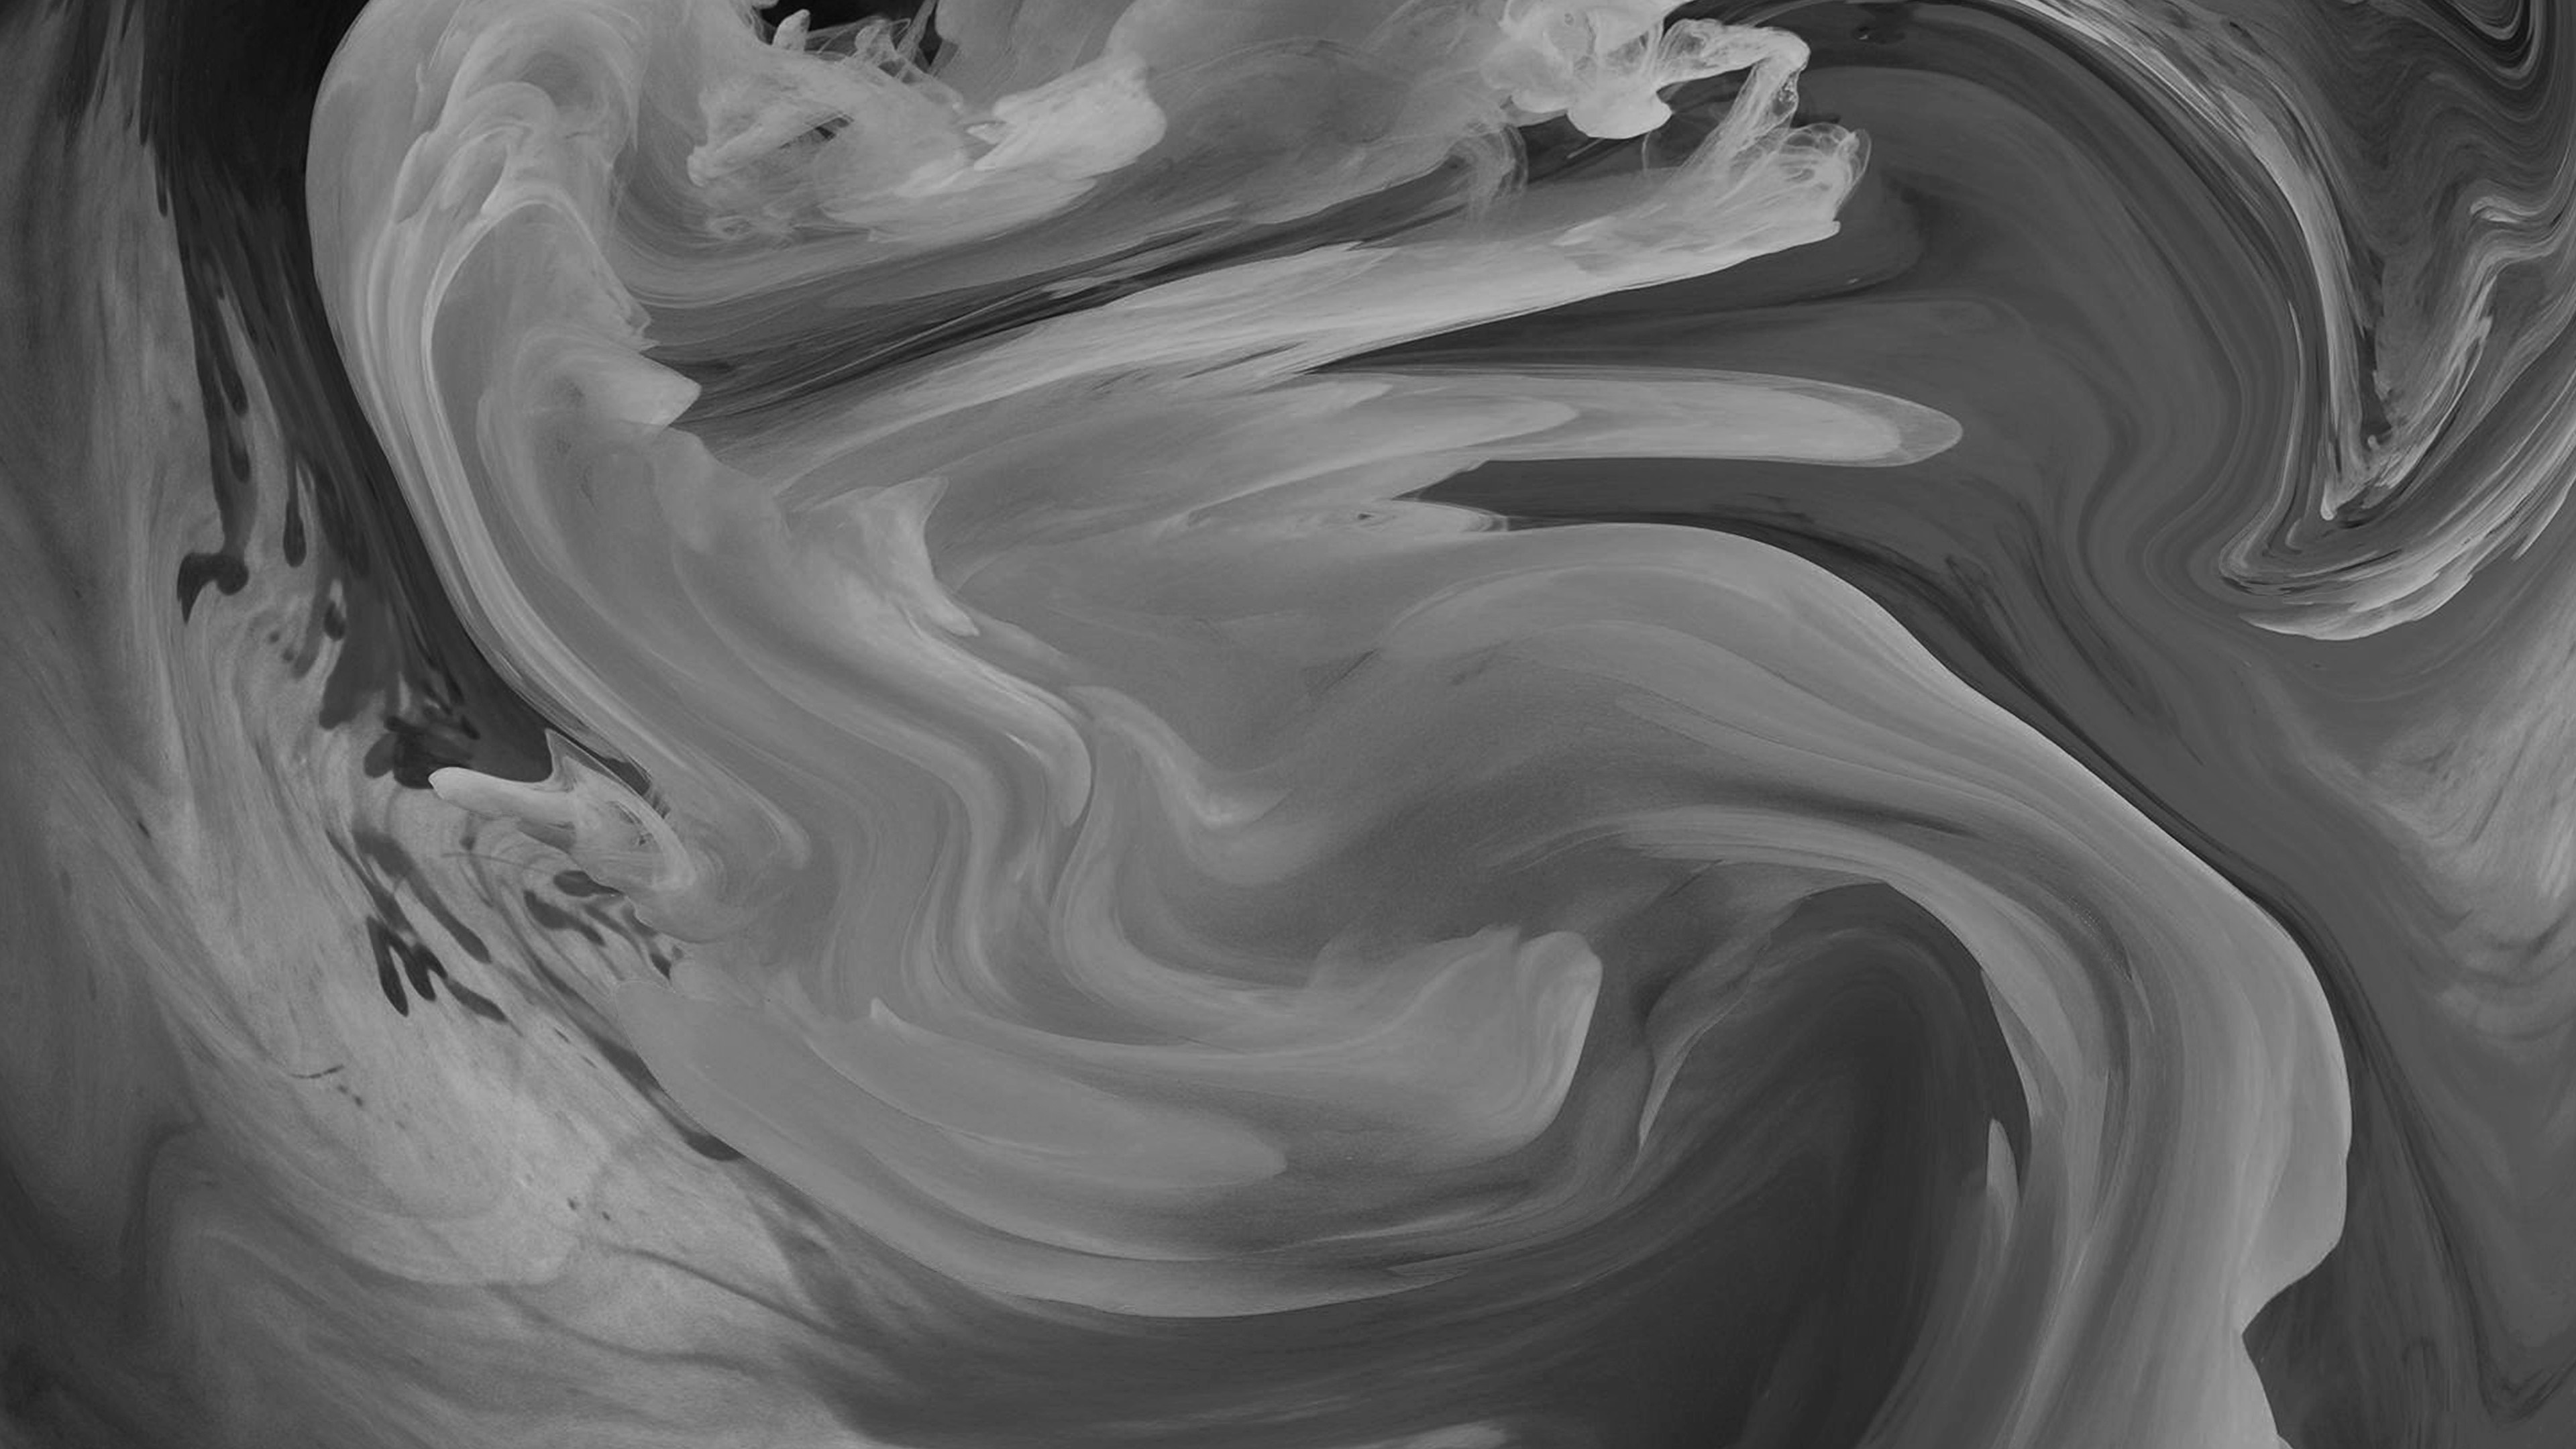 Vl09 Hurricane Swirl Abstract Art Paint Dark Bw Pattern